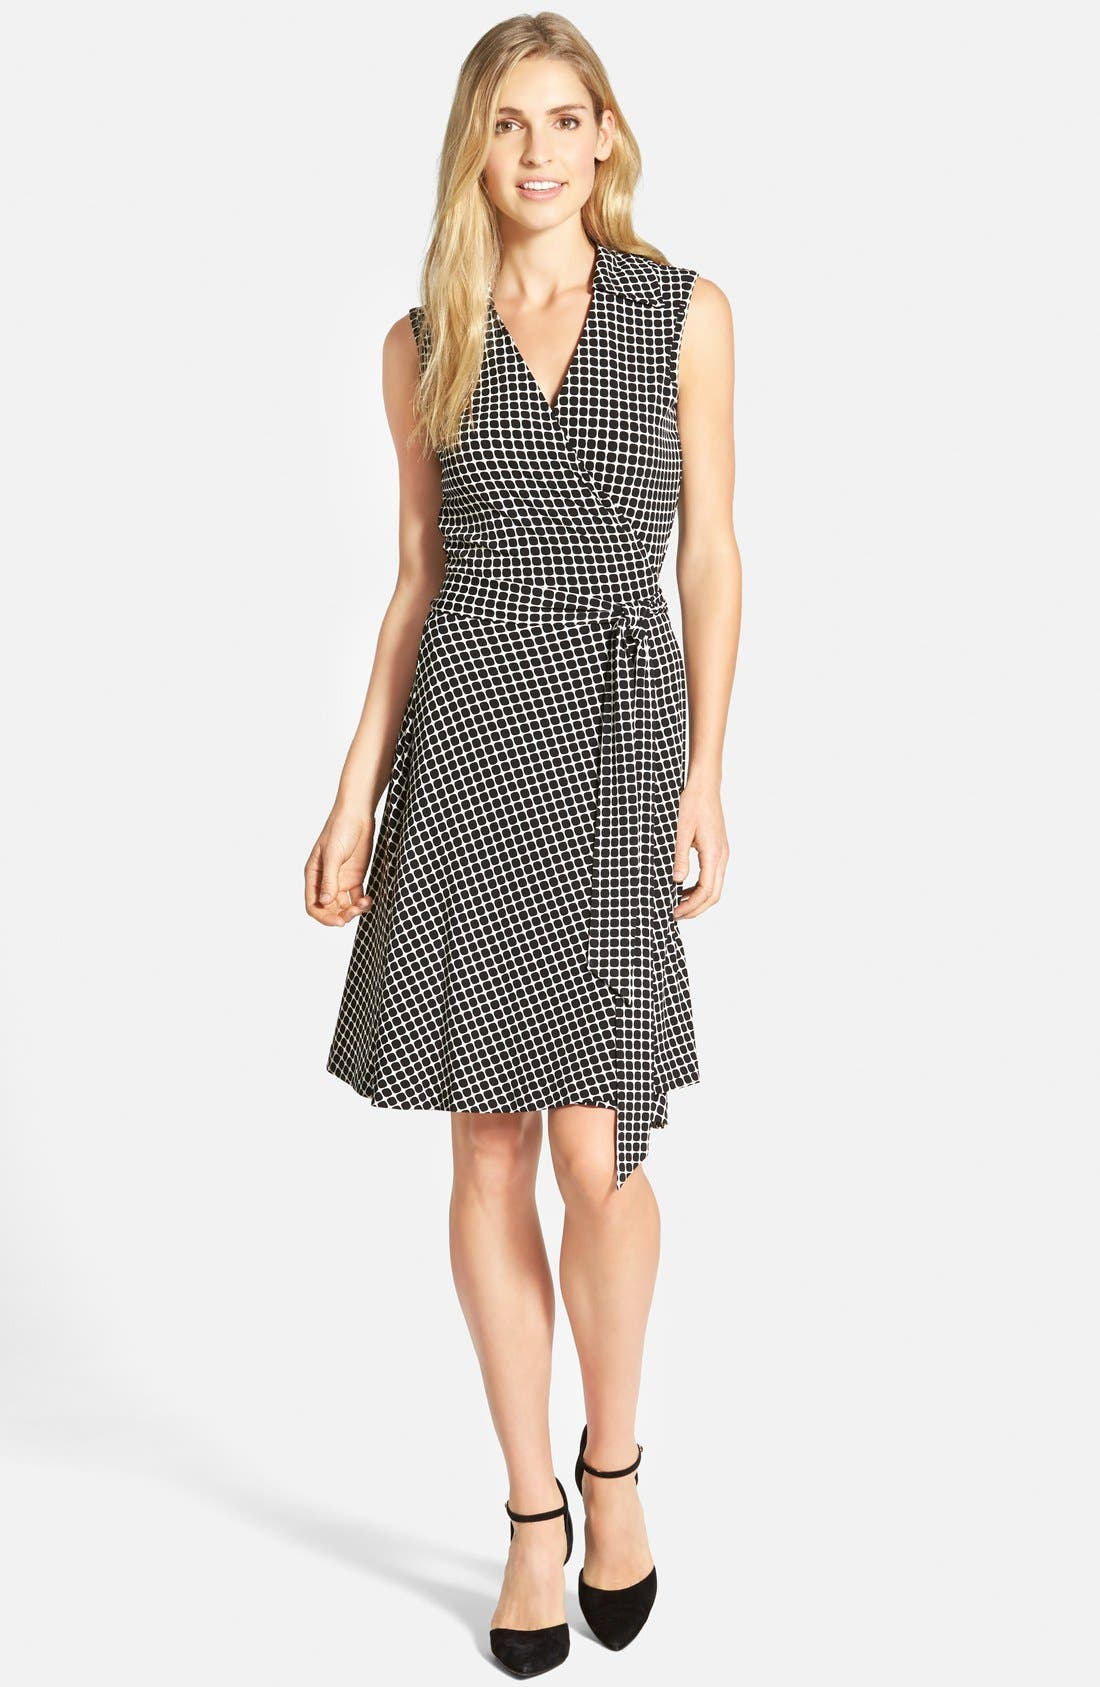 Main Image - Vince Camuto 'Graphic Boxes' Sleeveless Wrap Dress (Regular & Petite) (Nordstrom Online Exclusive)